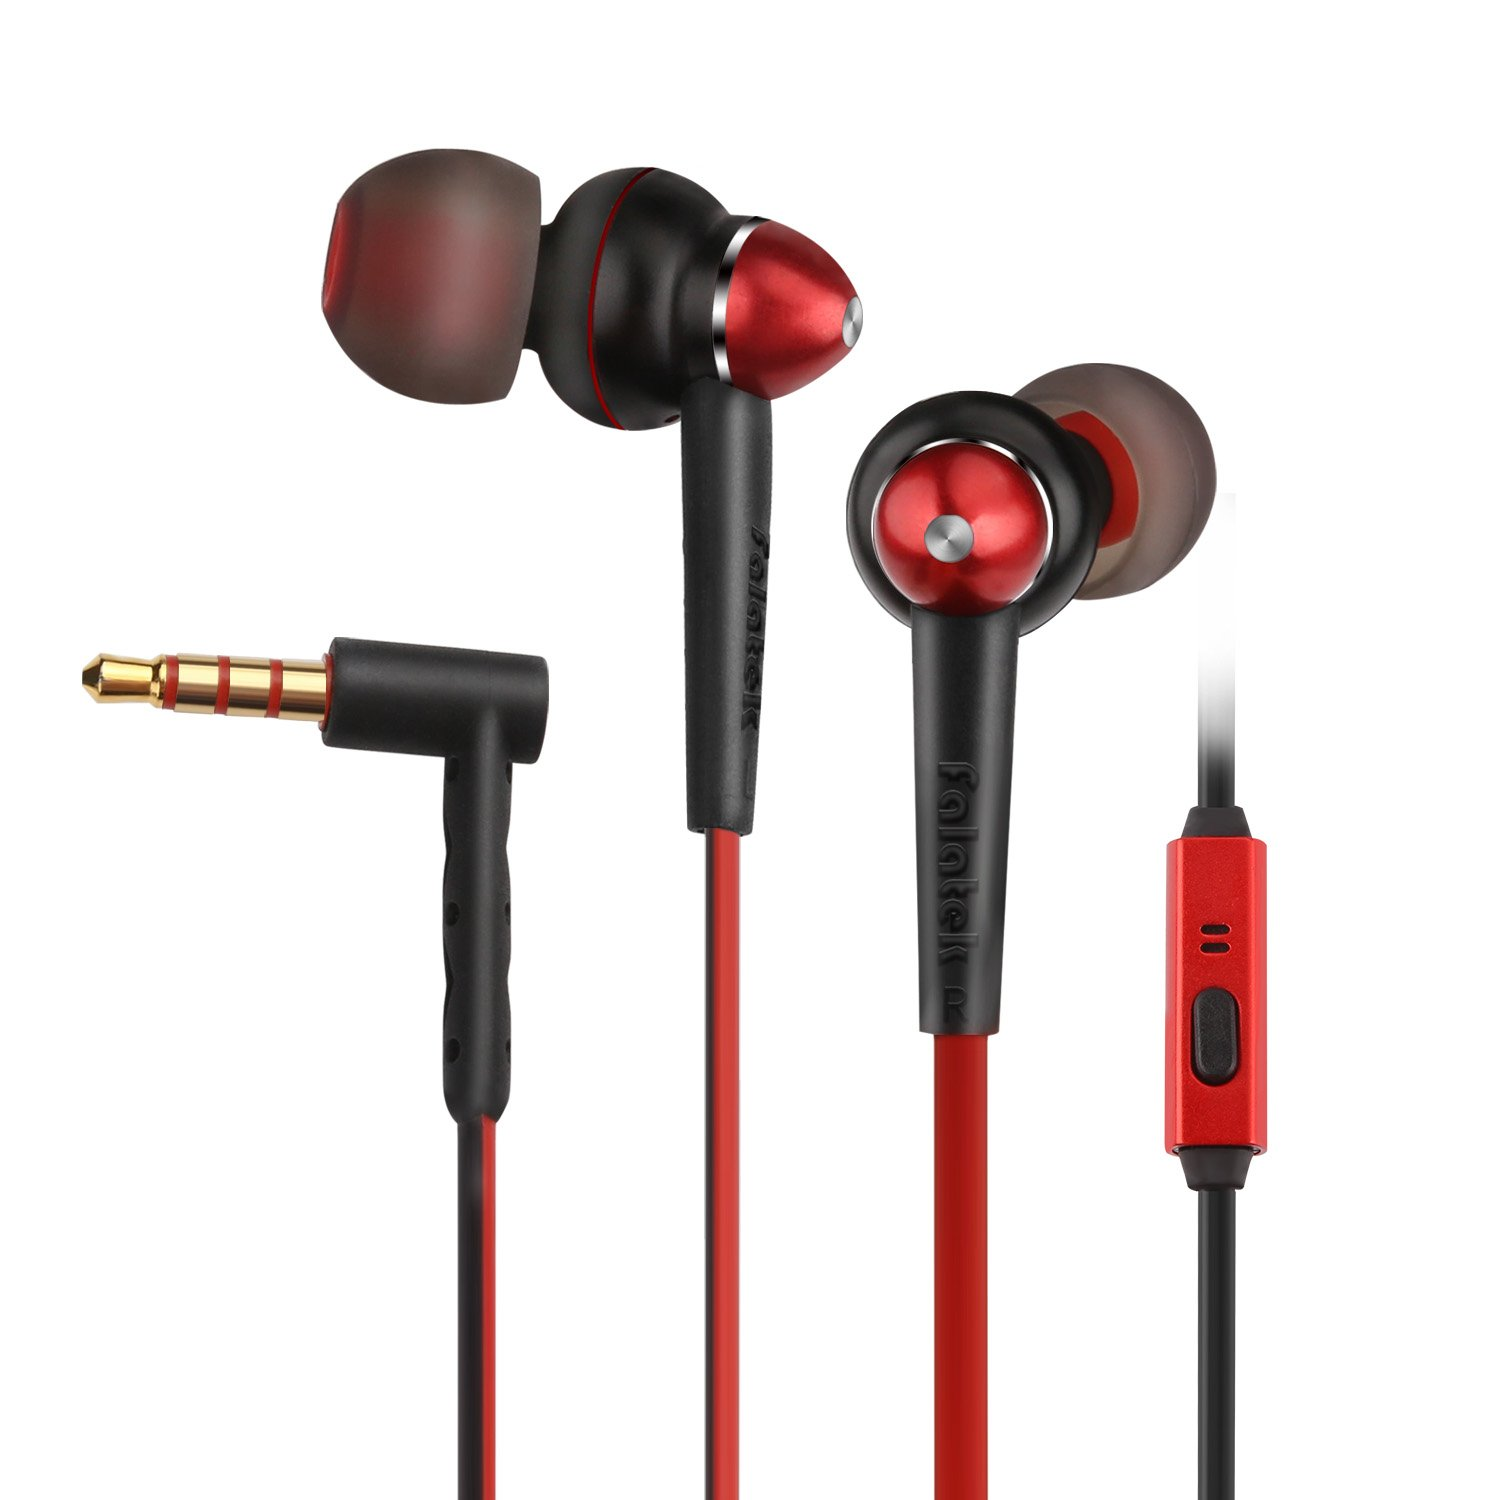 Falatek In-Ear Earphone With Mic And Noise Isolation And